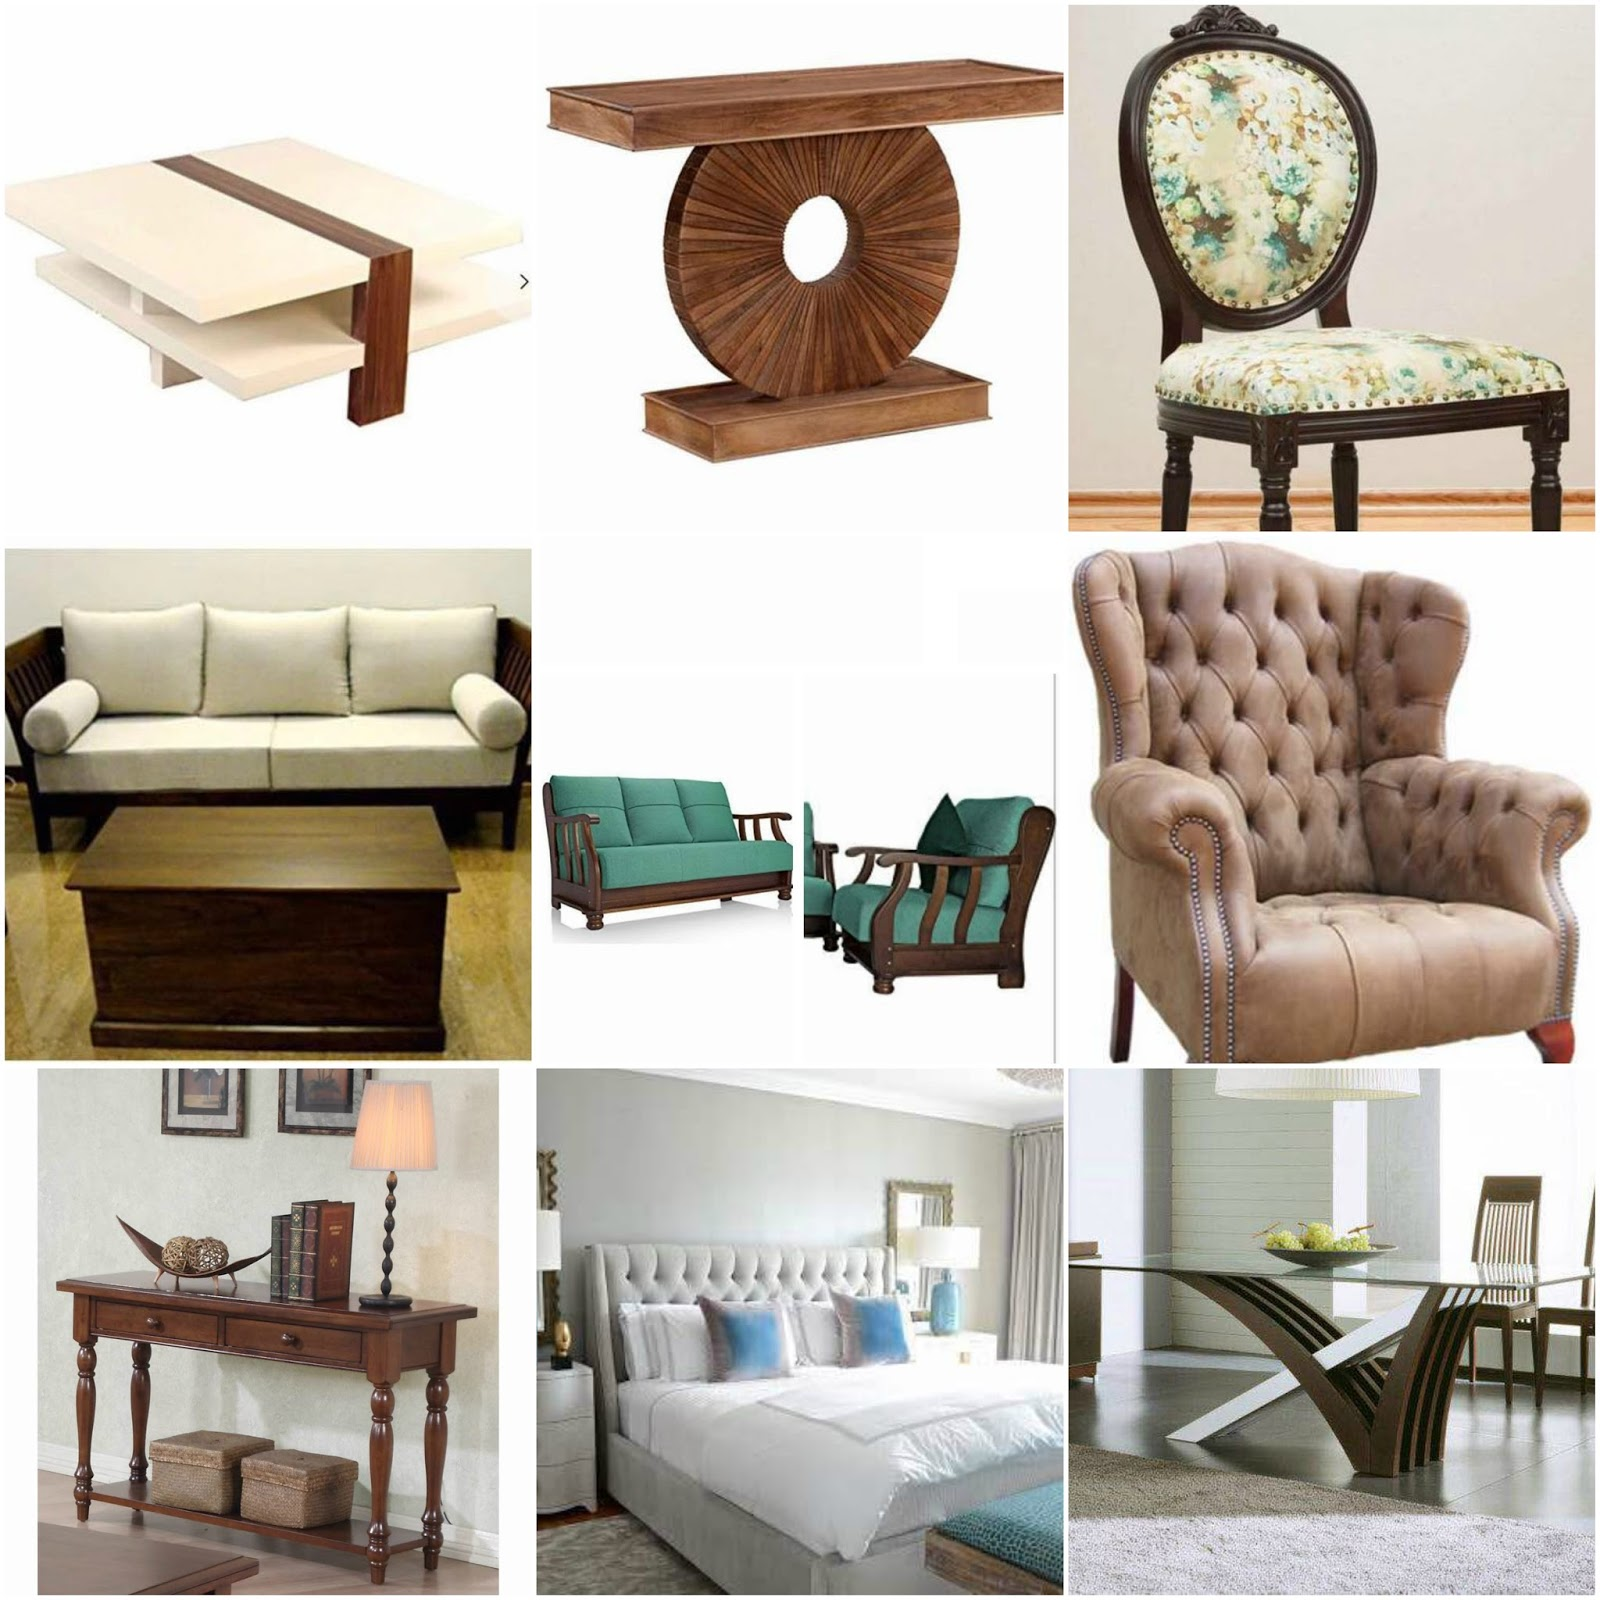 Latest furniture latest designs best shop for wooden furniture in kirti nagar with lowest price - Latest furniture ...